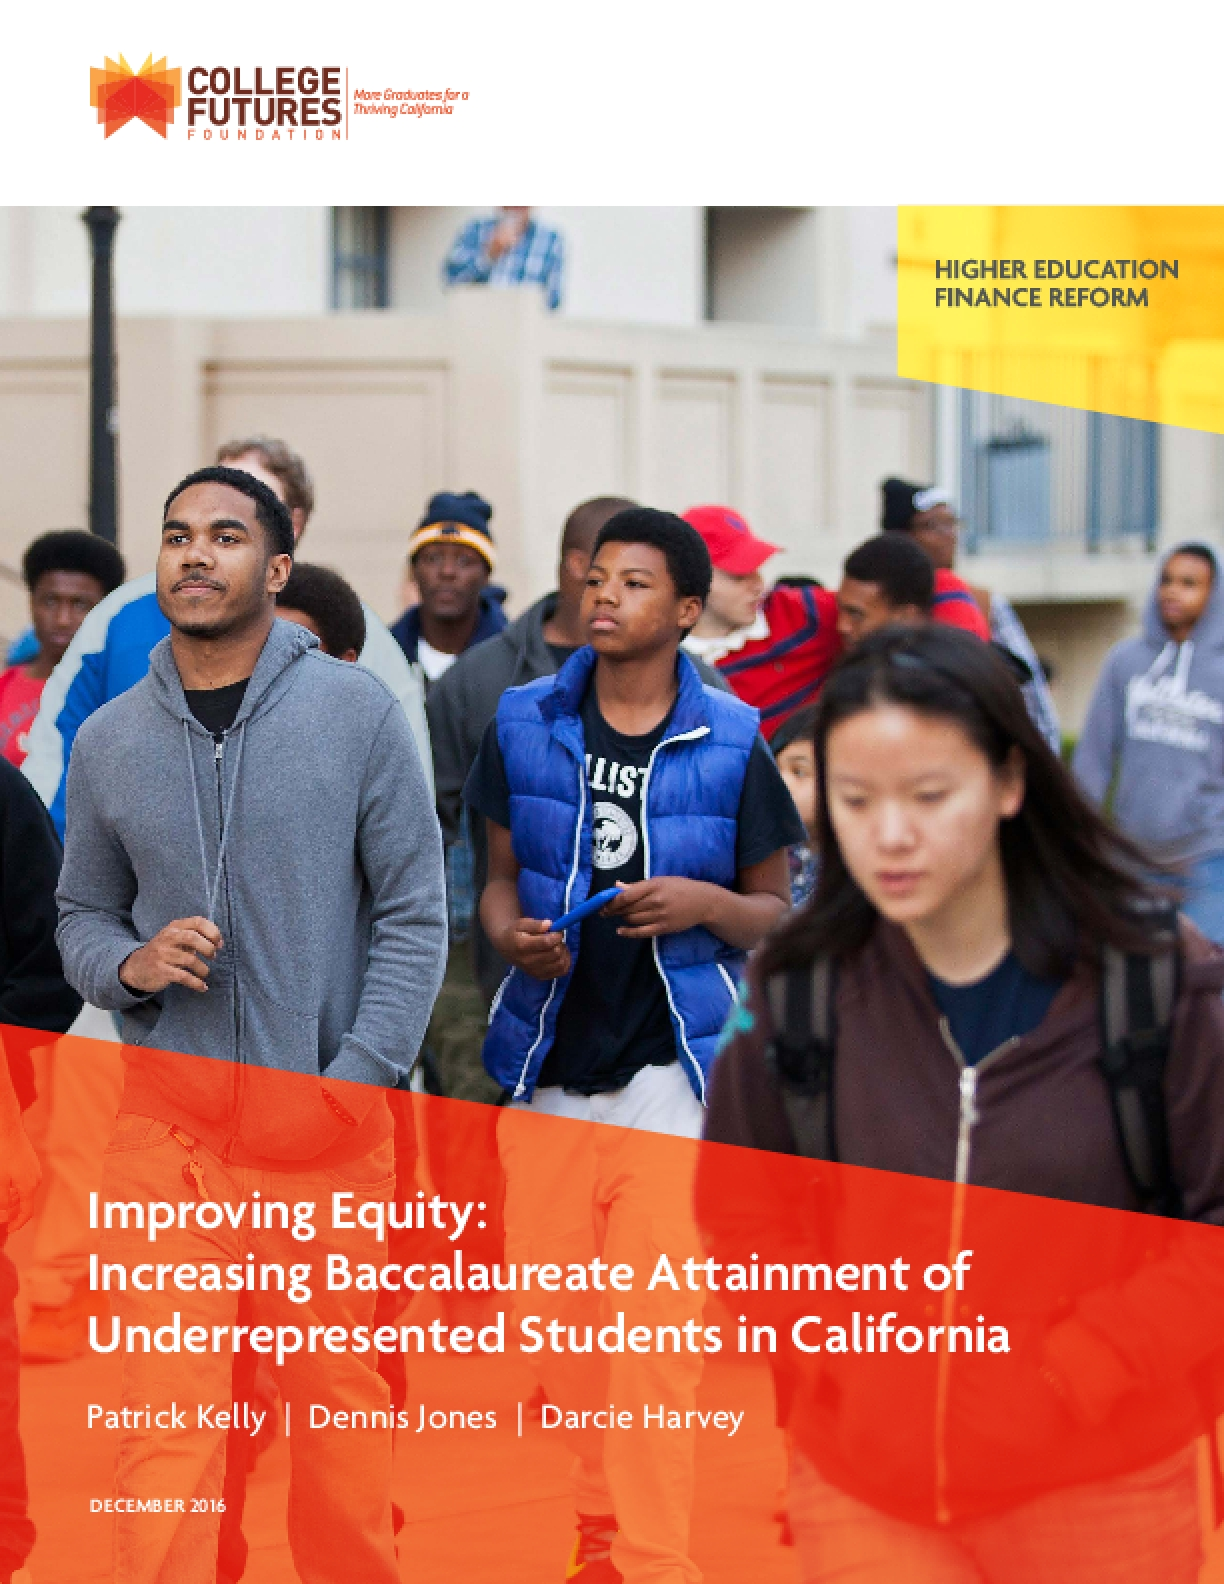 Improving Equity: Improving Baccalaureate Attainment of Underrepresented Students in California